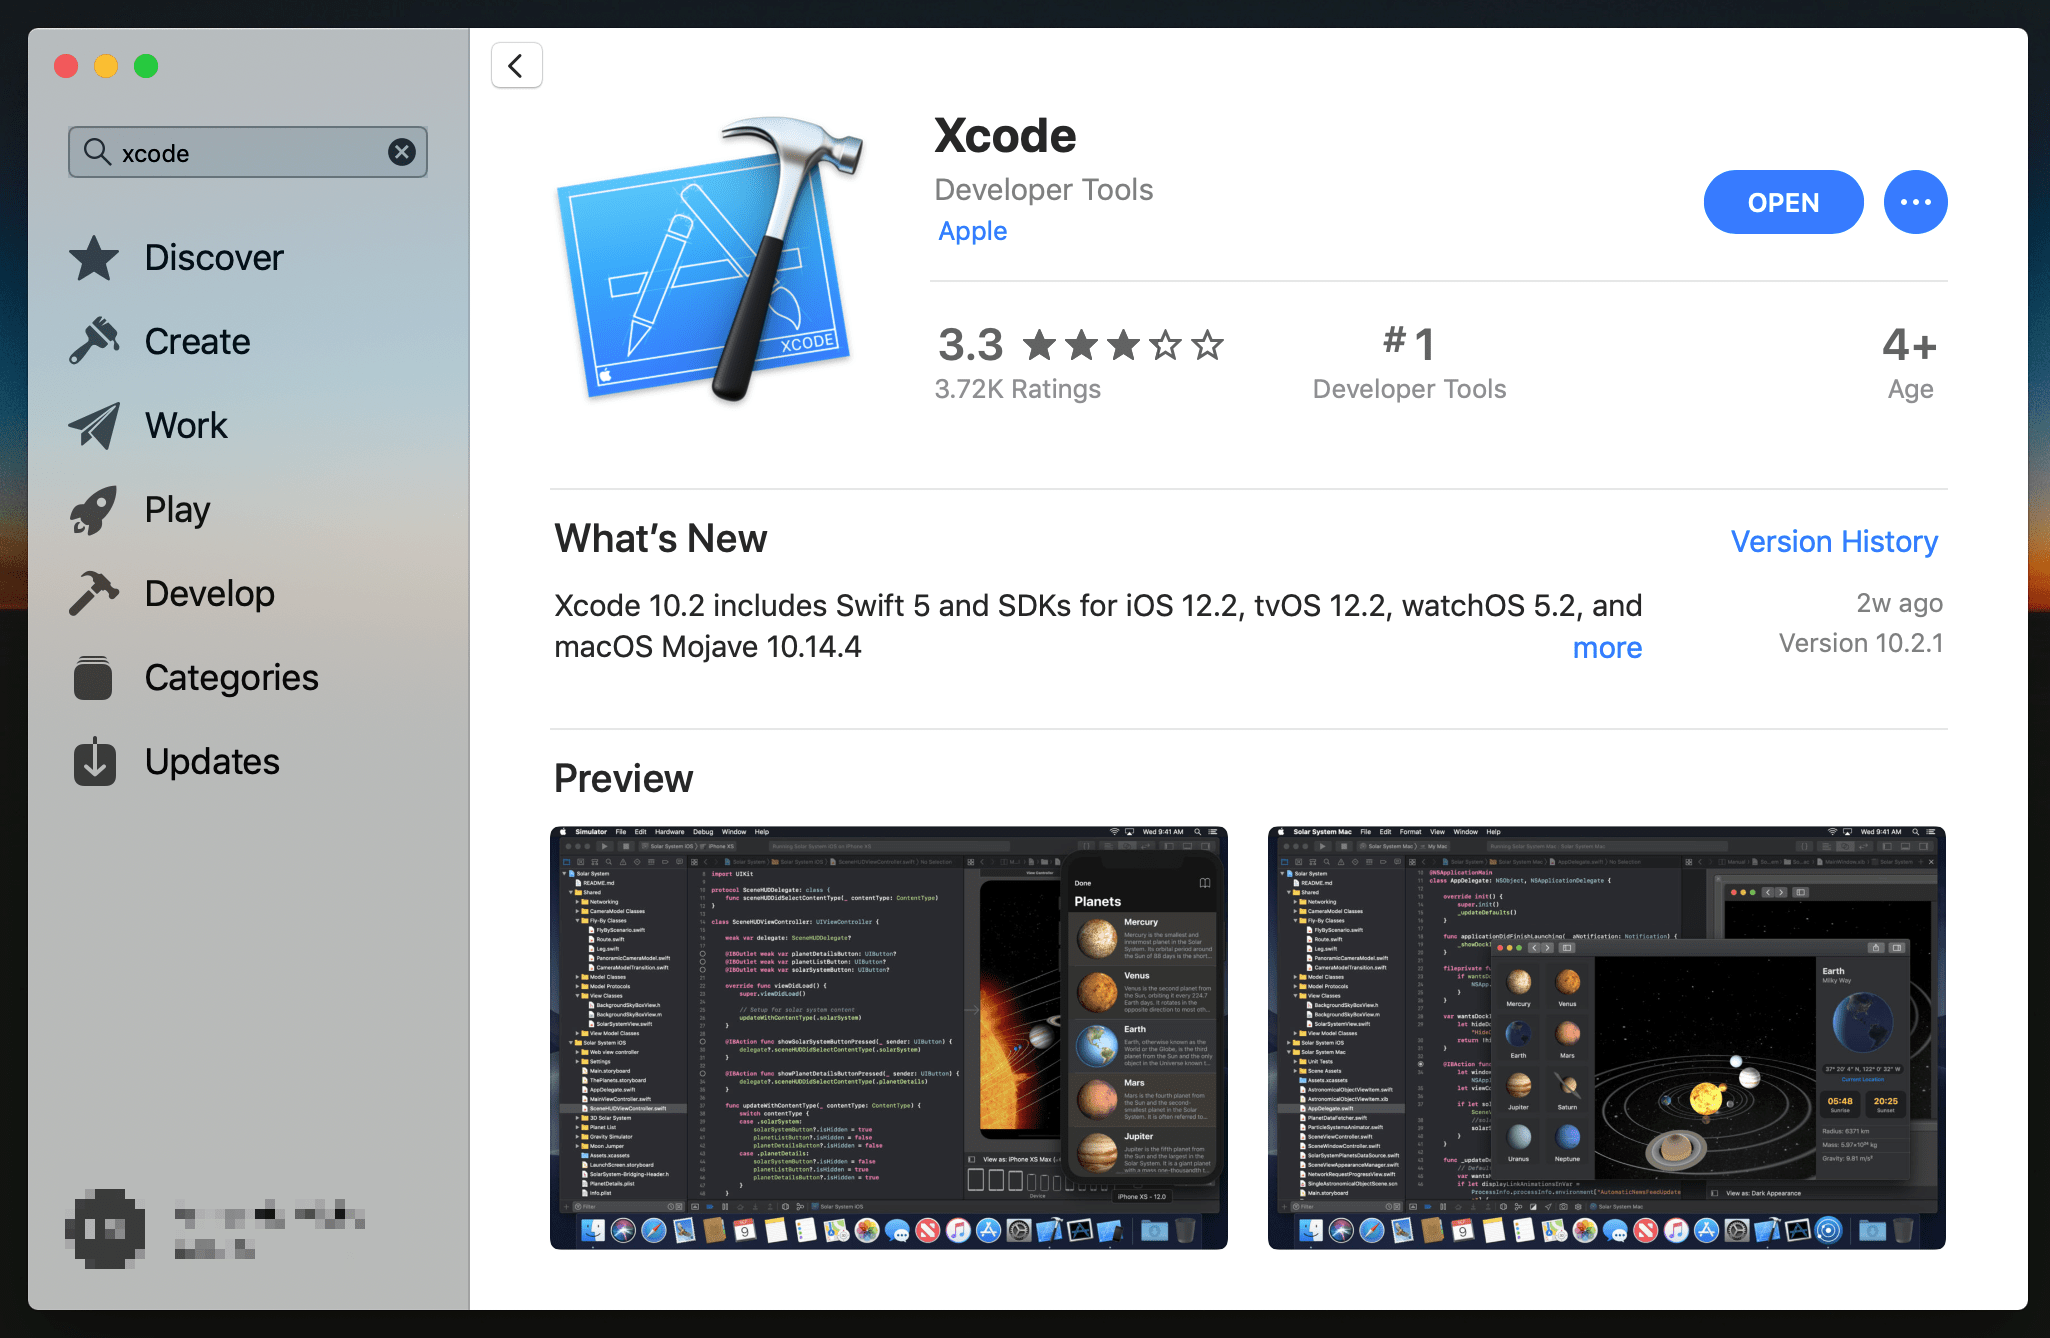 App Store: Xcode app page